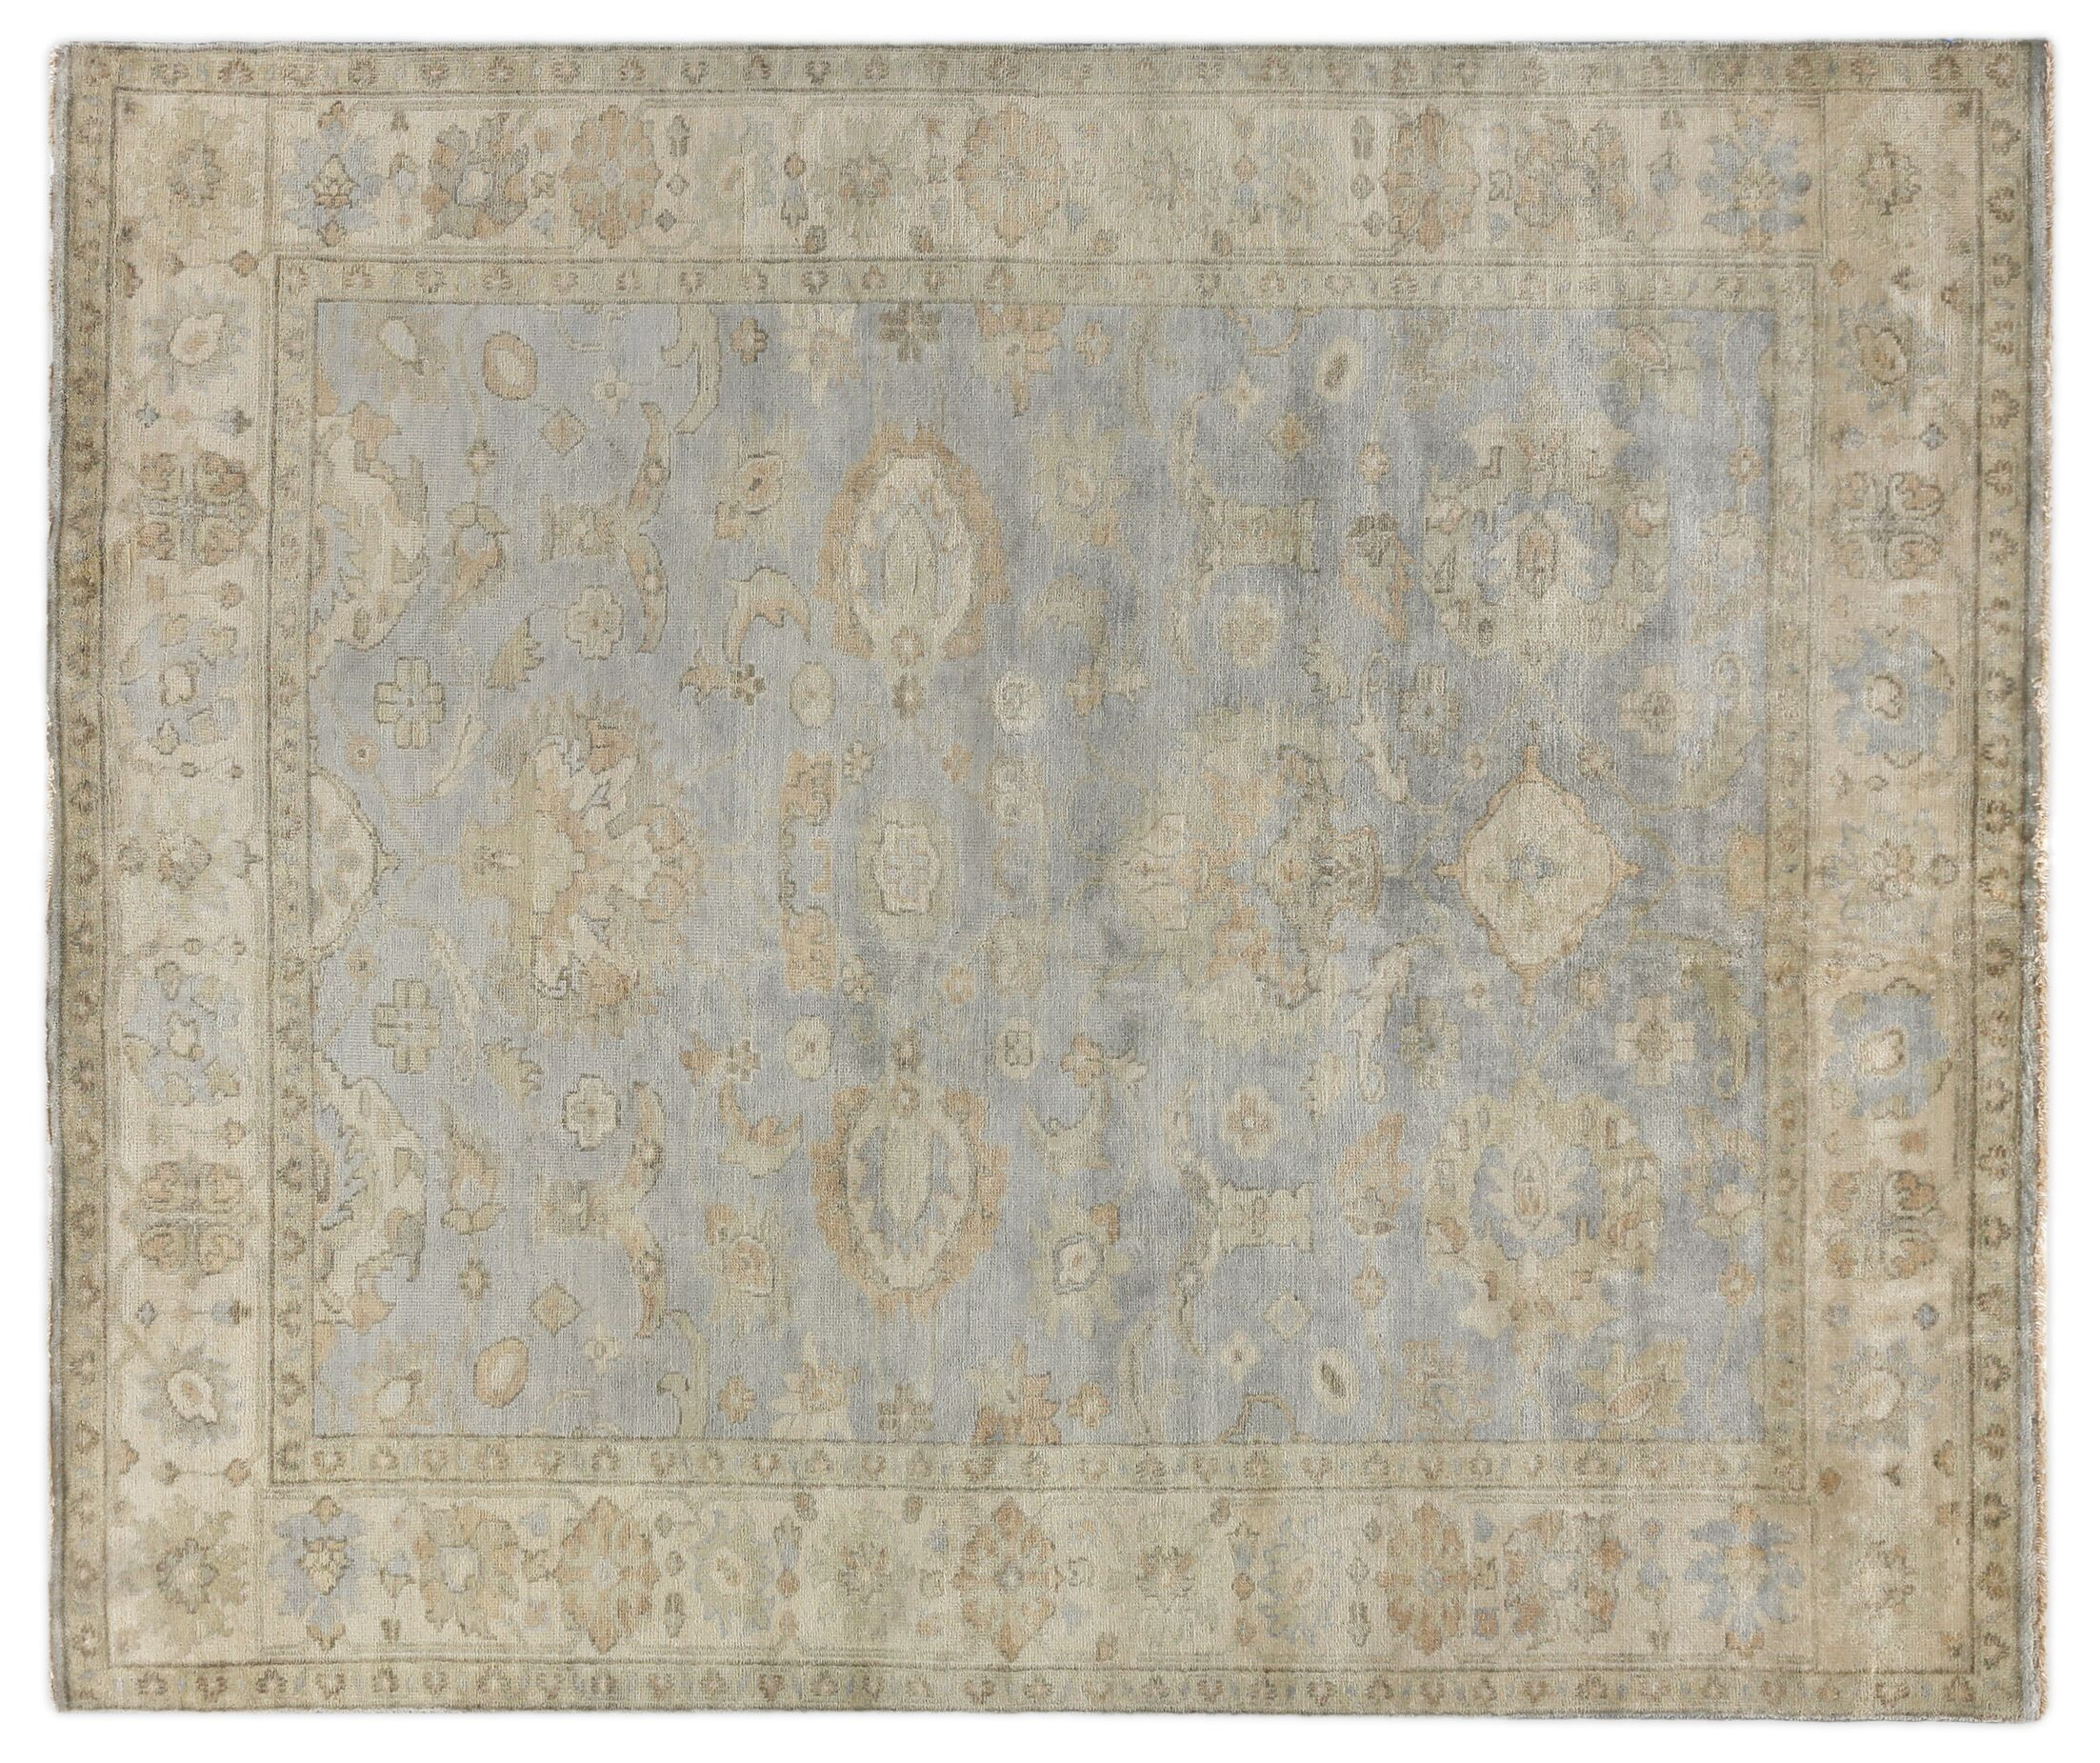 Oushak Hand-Knotted Wool Gray/Ivory Area Rug Rug Size: Rectangle 8' x 10'